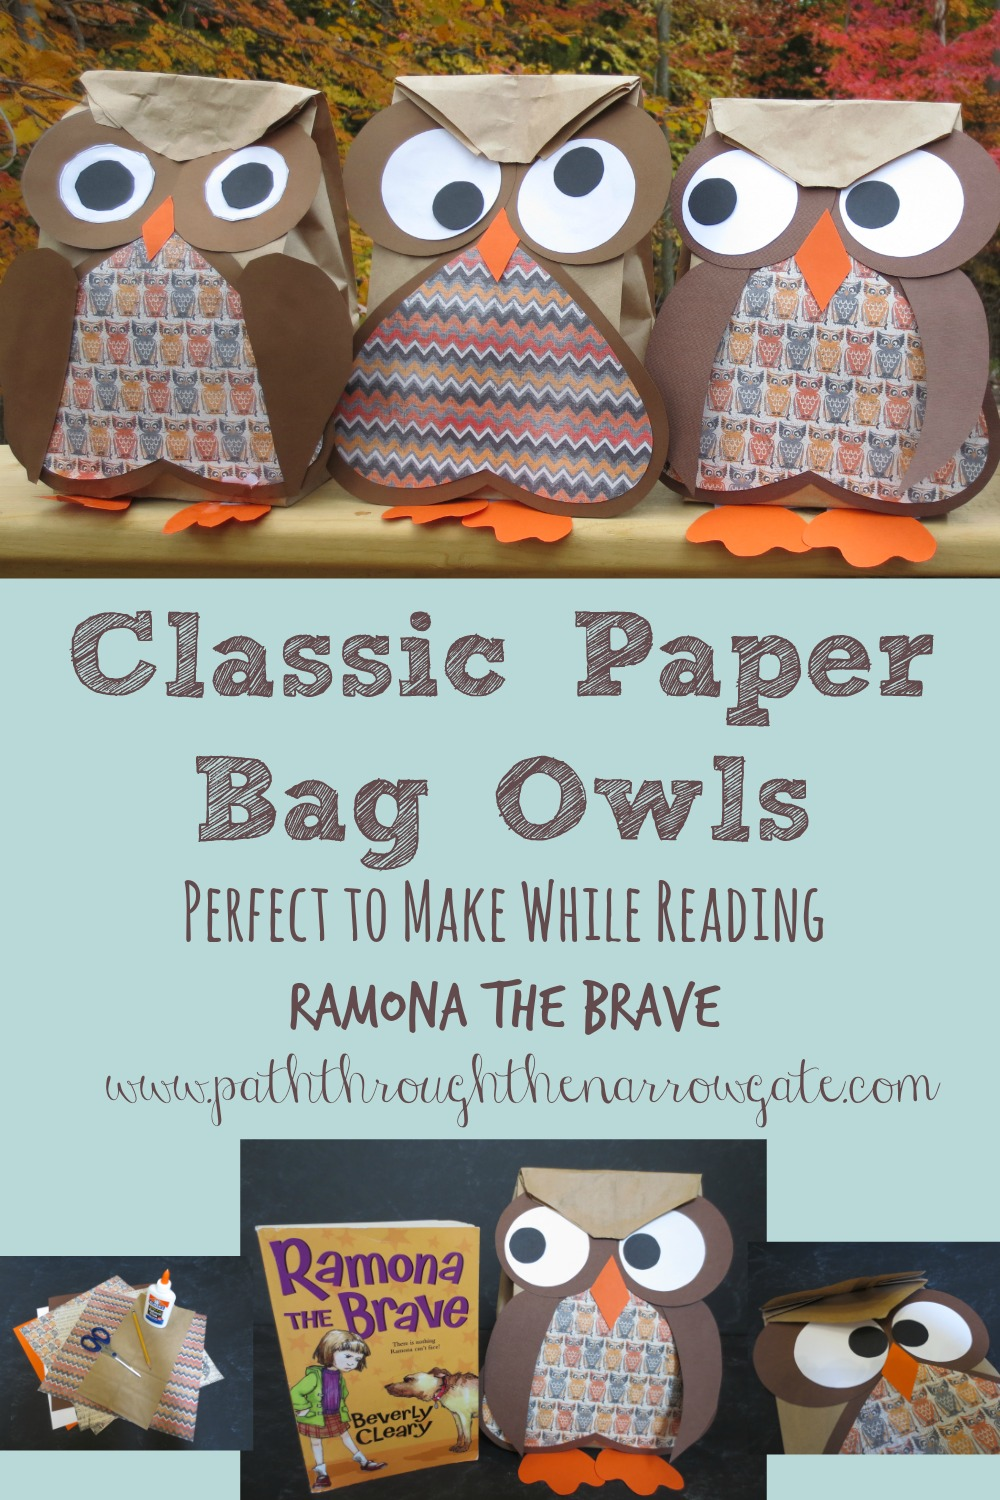 Classic Paper Bag Owls - These simple to make, super cute owls make a perfect pairing with Beverly Cleary's Ramona the Brave.